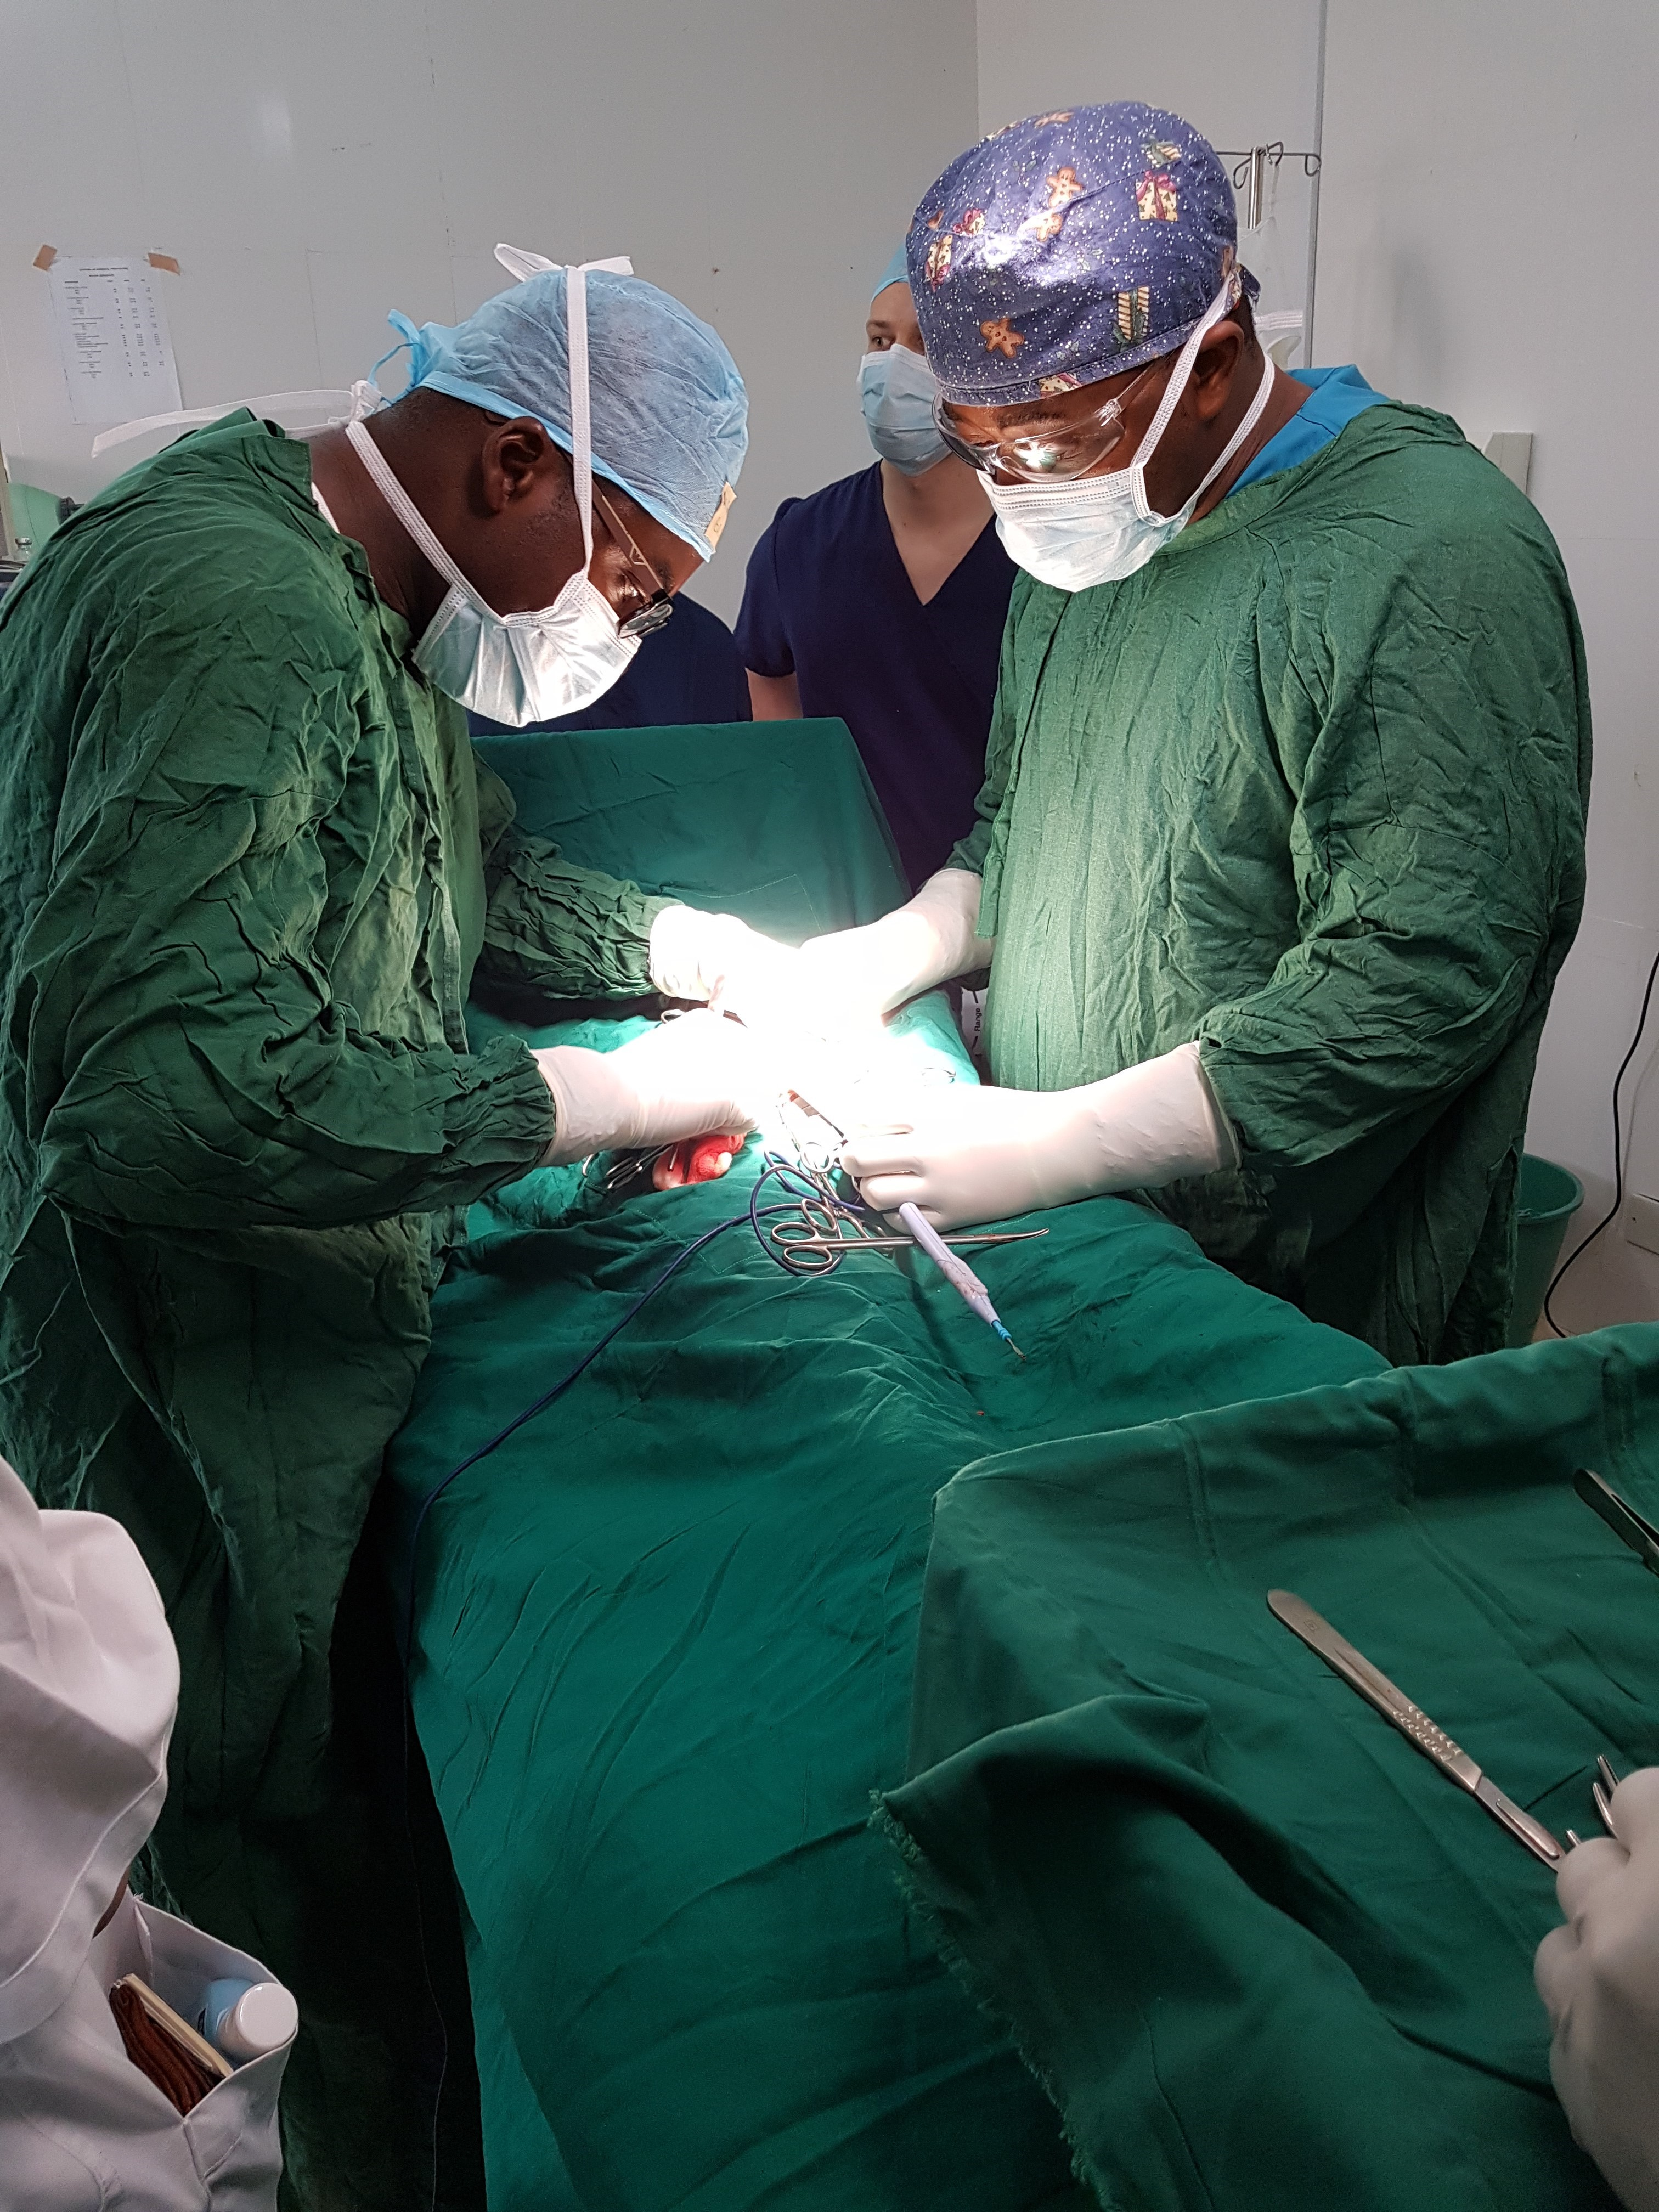 Surgery with Dr Brown Dr Kasole